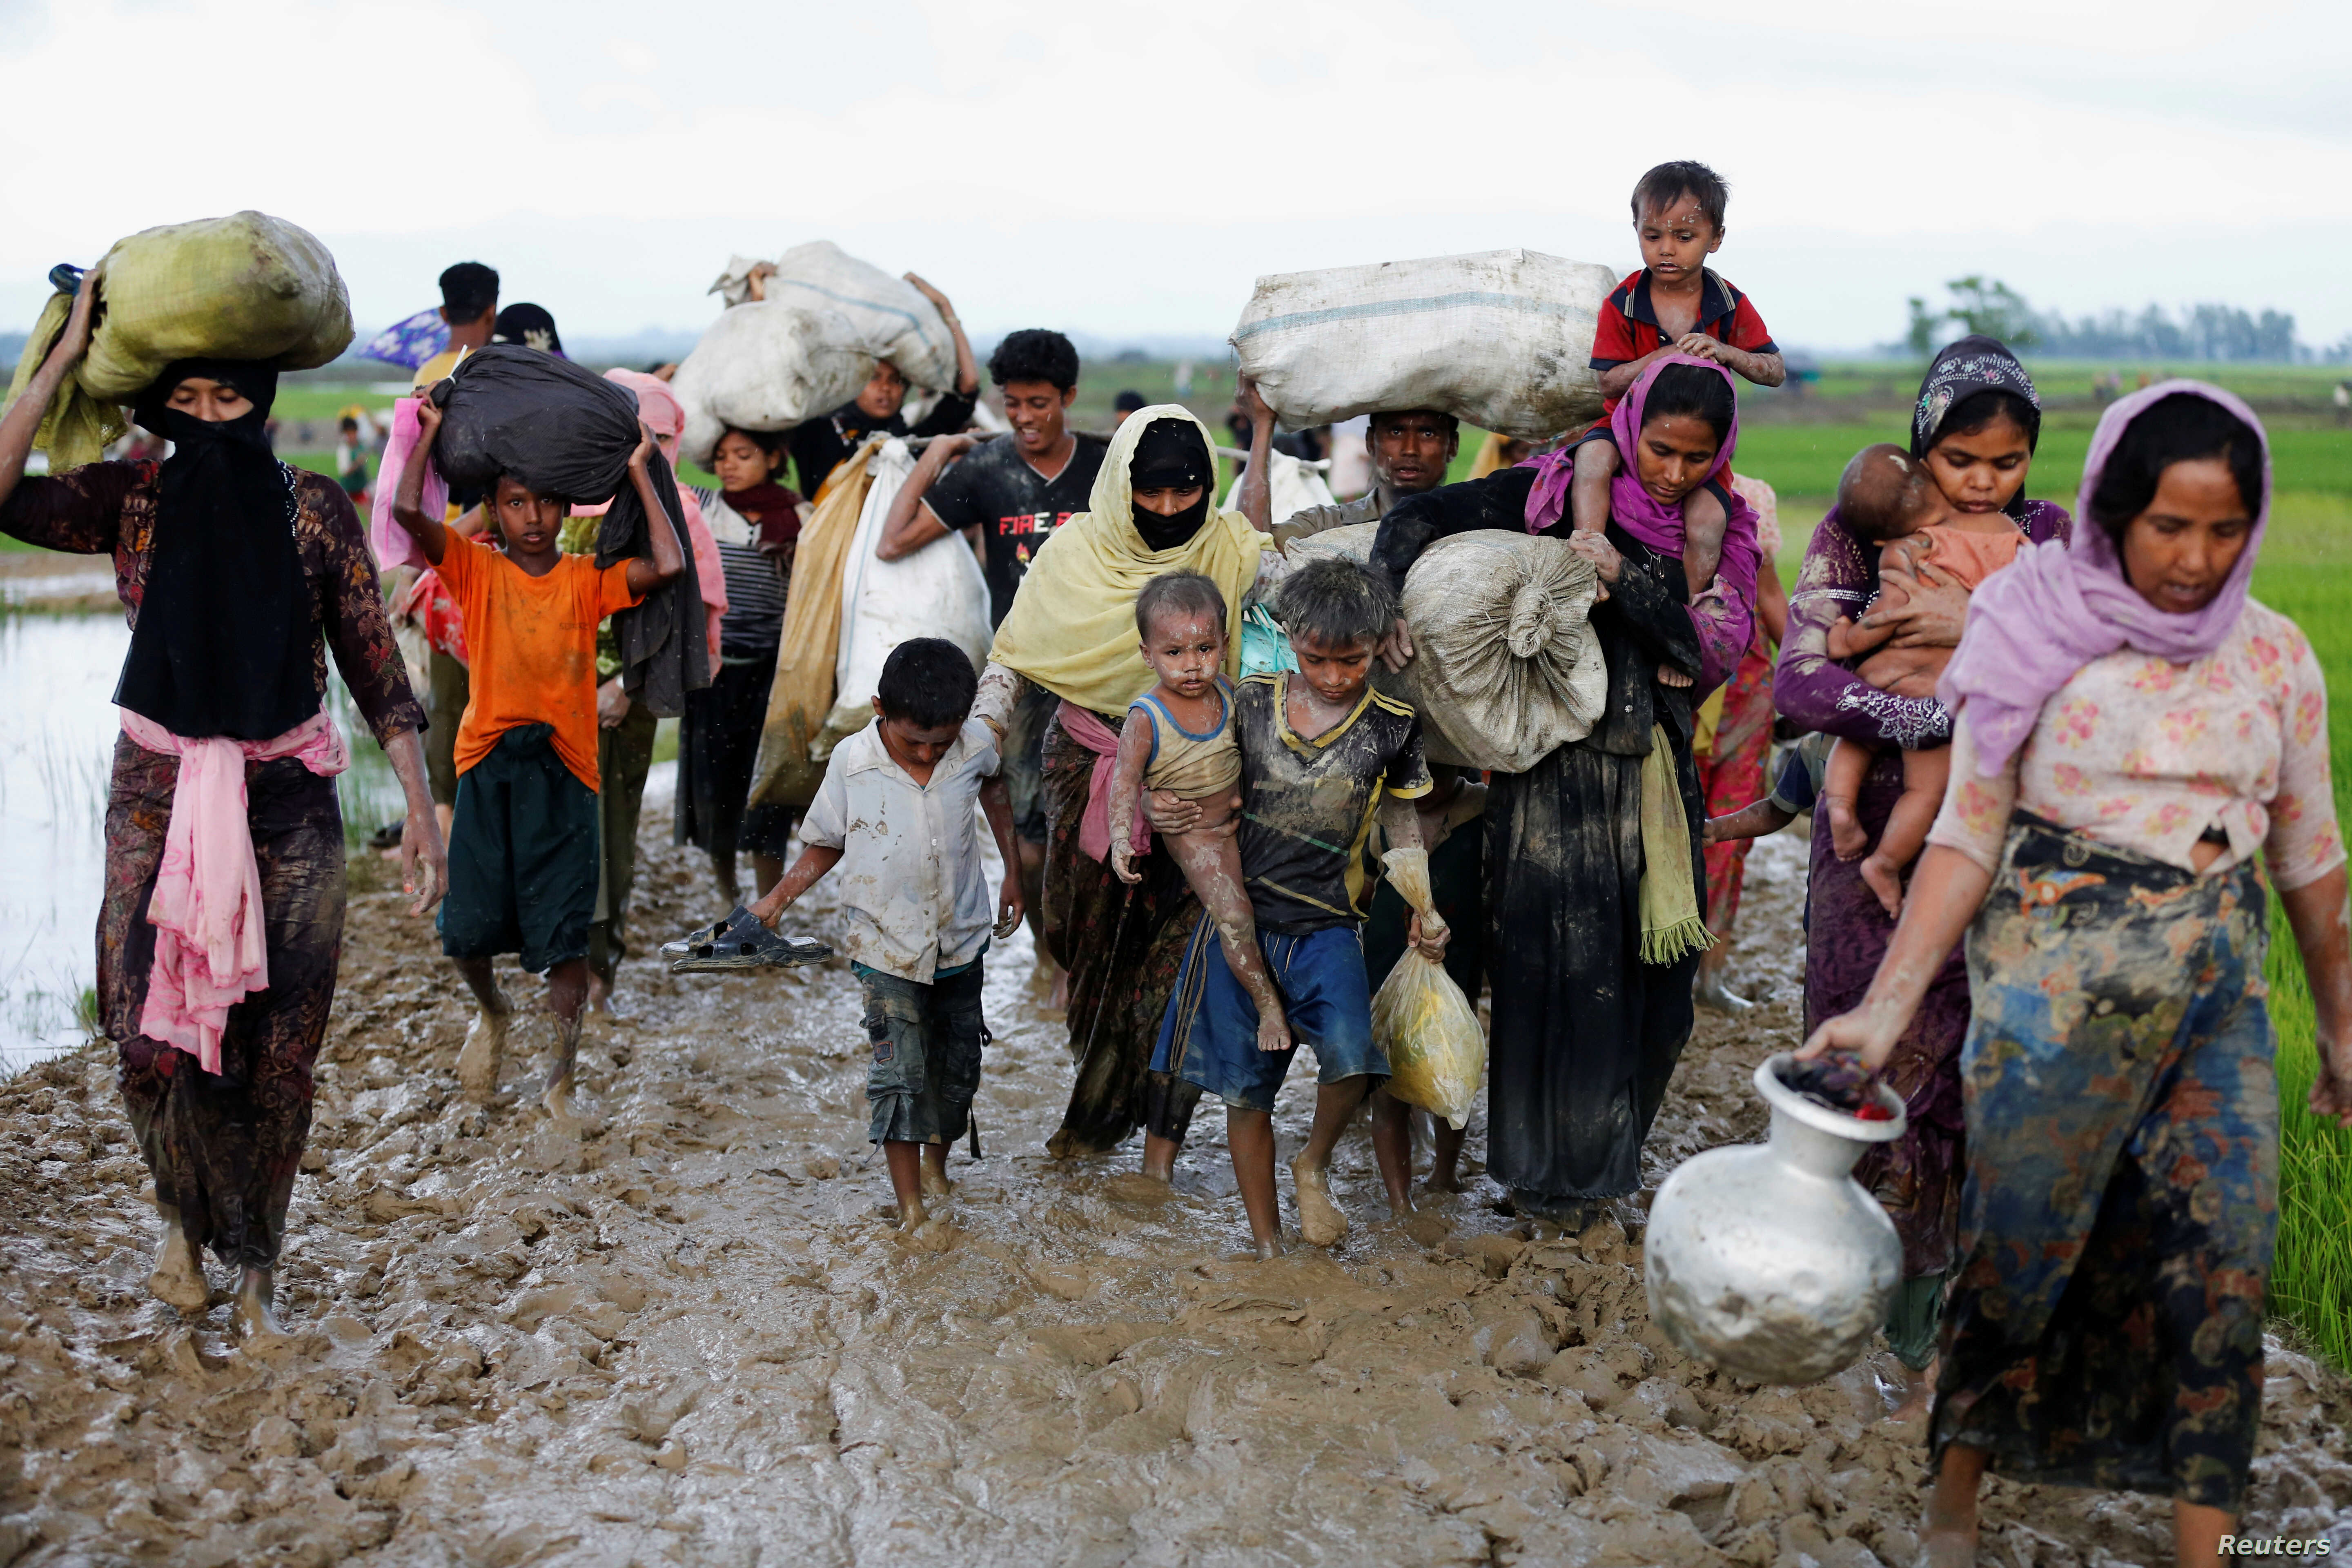 A group of Rohingya refugees walk on the muddy road after traveling over the Bangladesh-Myanmar border in Teknaf, Bangladesh, Sept. 1, 2017.